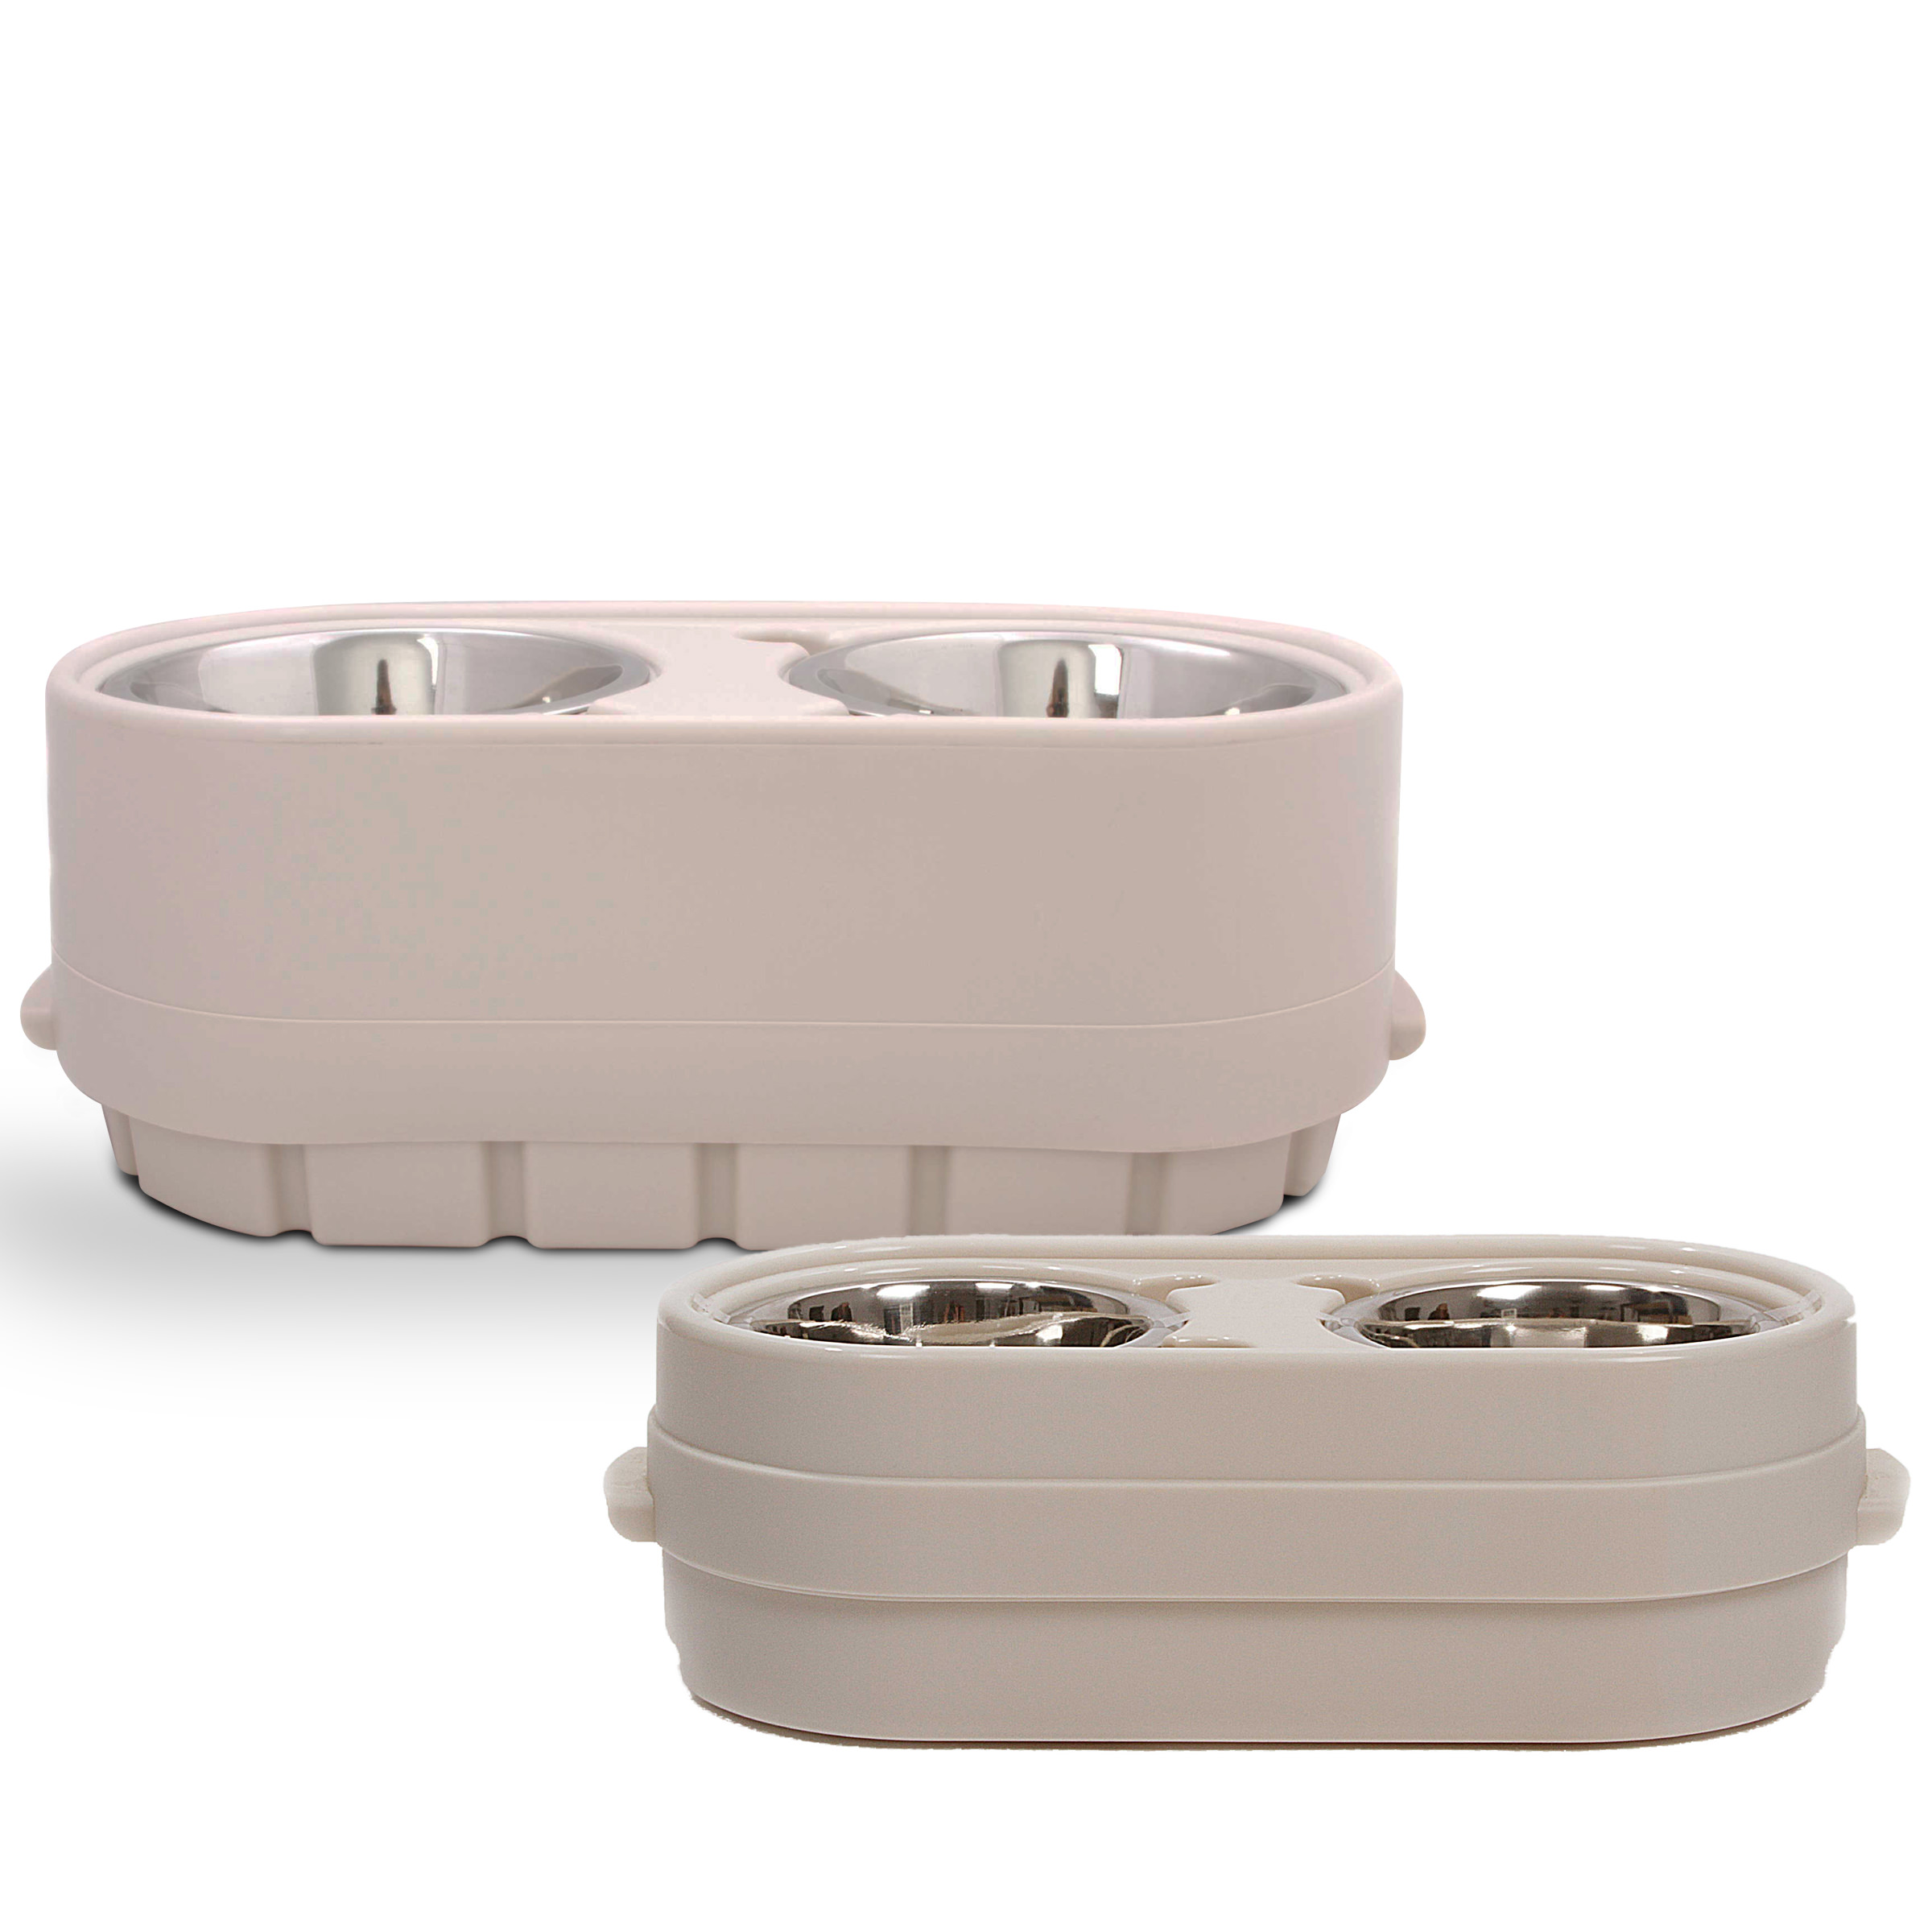 Our Pets Store N Feed Pet Feeder by Our Pet's